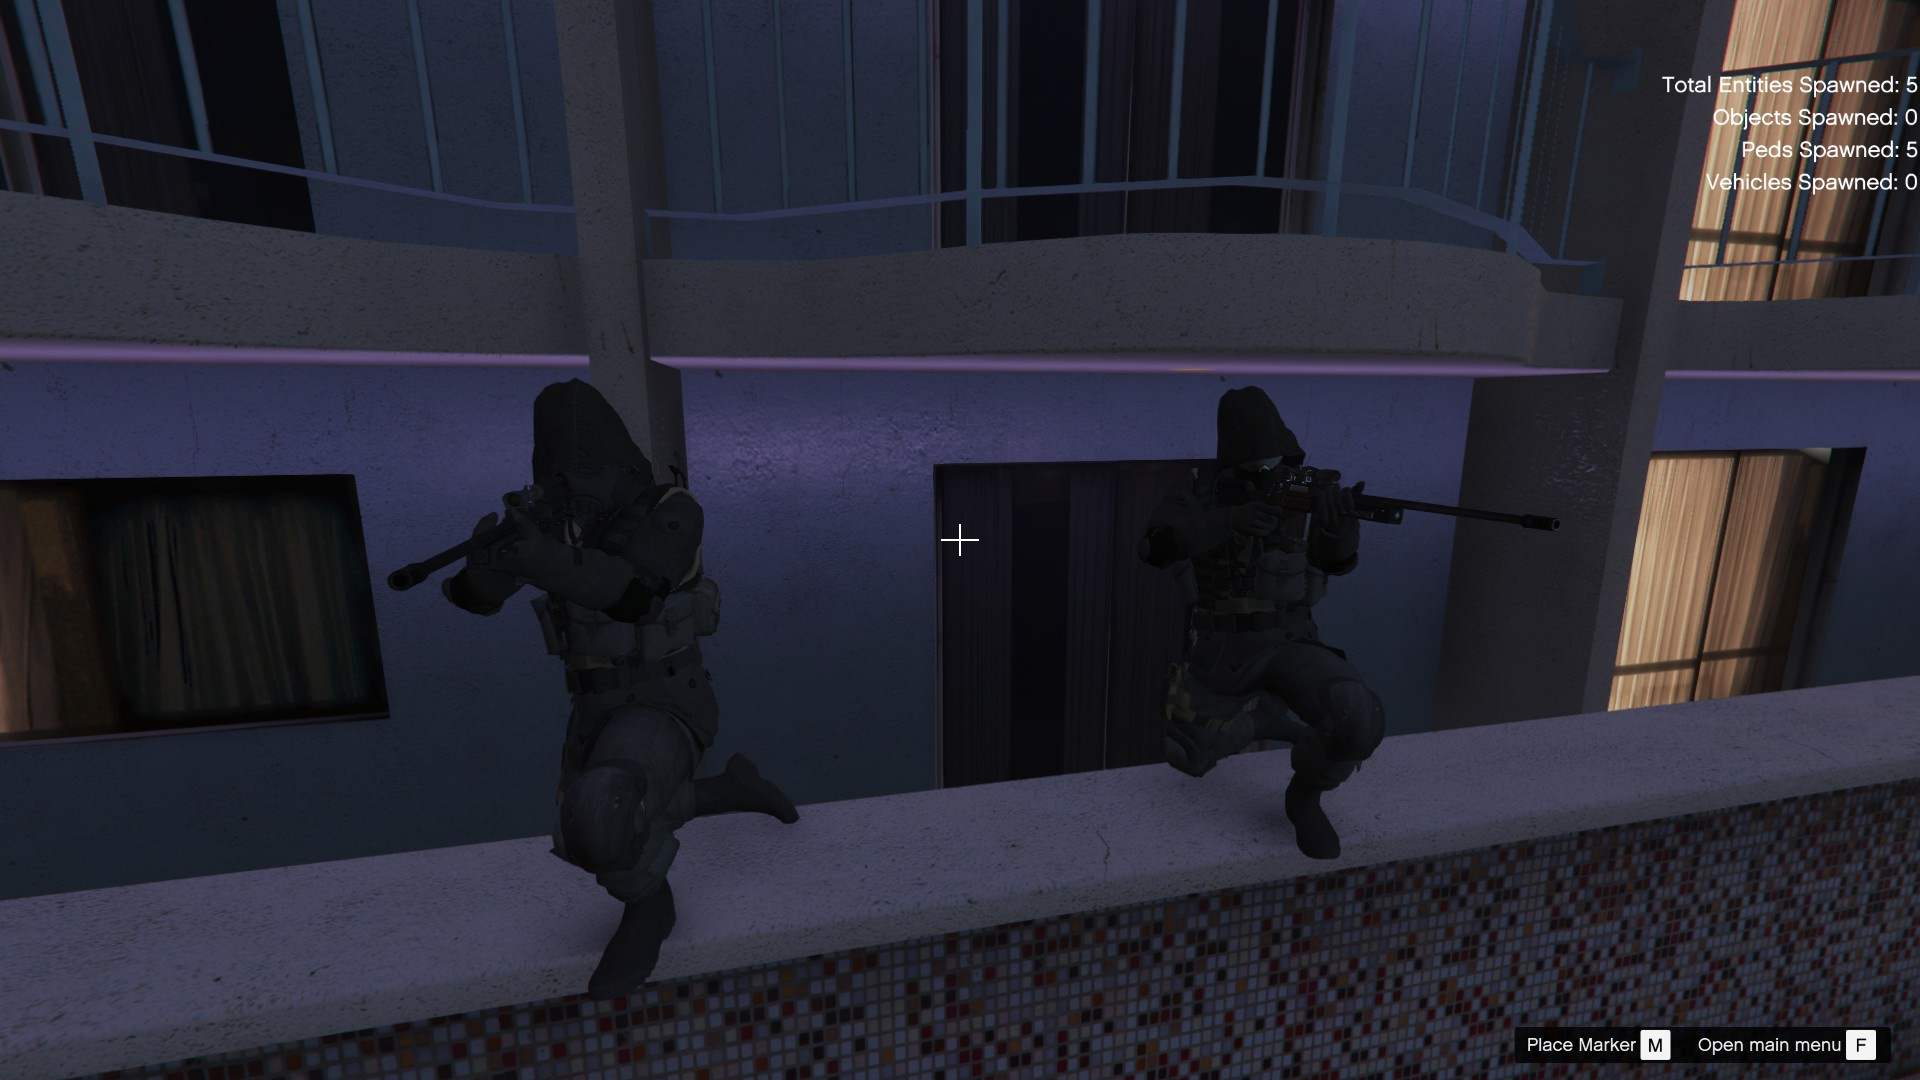 Call of Duty: Modern Warfare 2 is a first-person shooter video game. The player can perform several actions, including jump, sprint, crouch, lay prone, and aim down their gun's iron sights. When the player is shot by an enemy, blood will splatter their heads-up display (HUD), denoting that they have taken damage; if the player avoids gunfire by taking cover, then their health will recover.